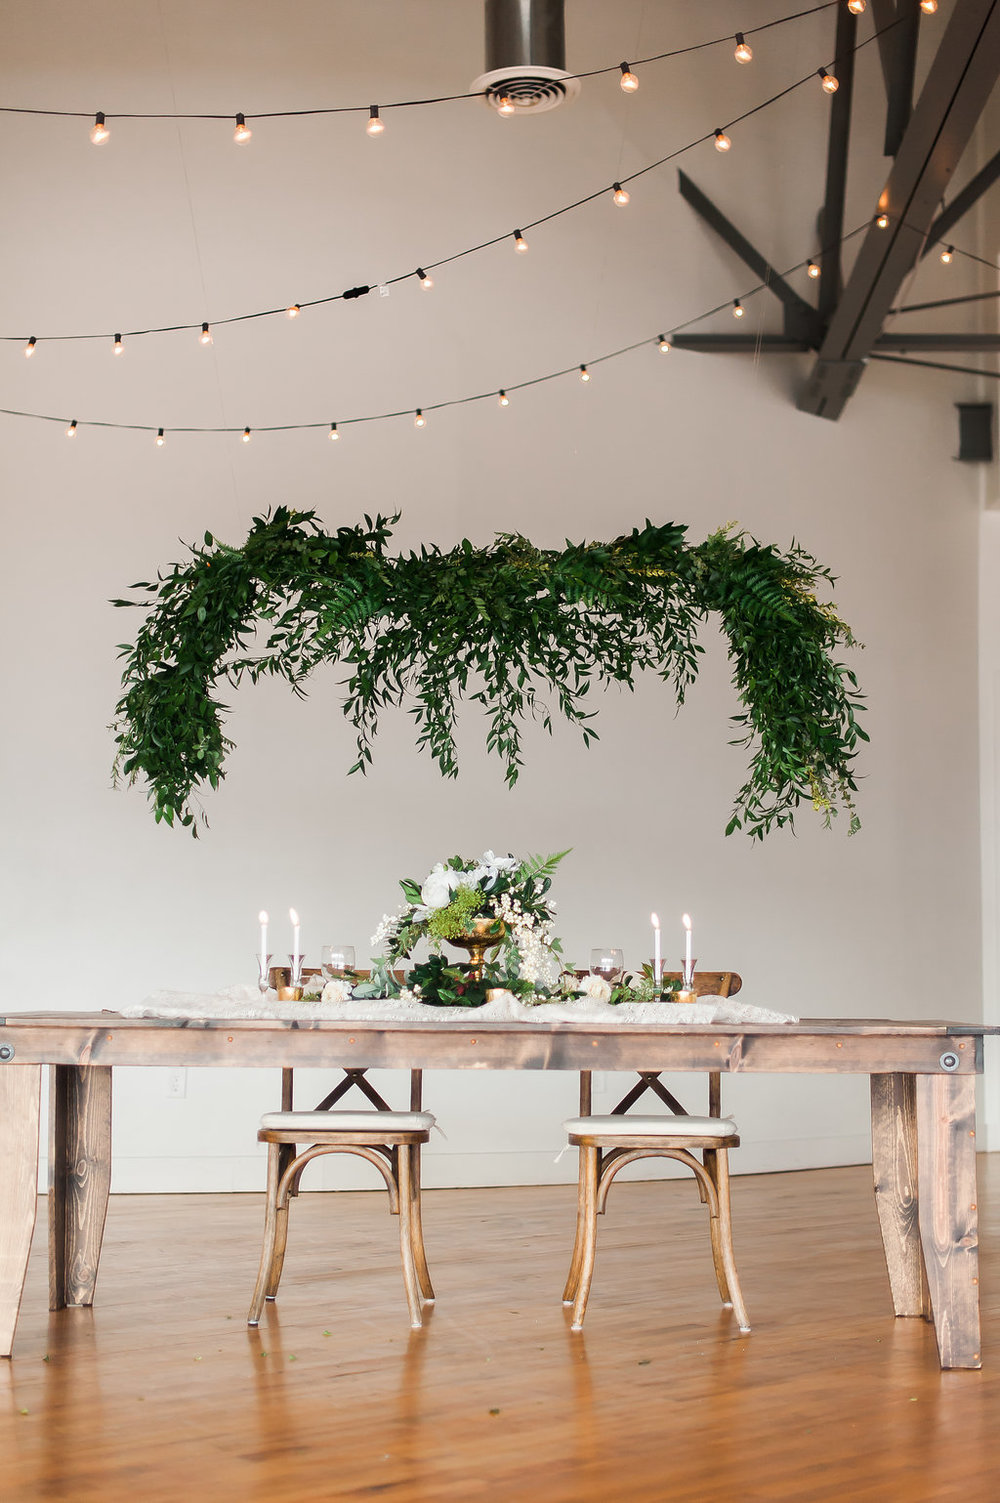 Credits: Wedding Planning/Design:  @VSIEvents , Photography: @laura.cook.photo, Venue: @btownpointe, Dress/Jewelry/Hair Accessories: @couturecloset_ky, Chairs and Farm Table: @southernclassicrentals, Decor Rentals and Florals: #milleniumeventsky @thecateringcompany, Hair and Makeup: @thairapy_by_alexis @beautypatrolmua, Flatware Rentals: @reliablerentalsky